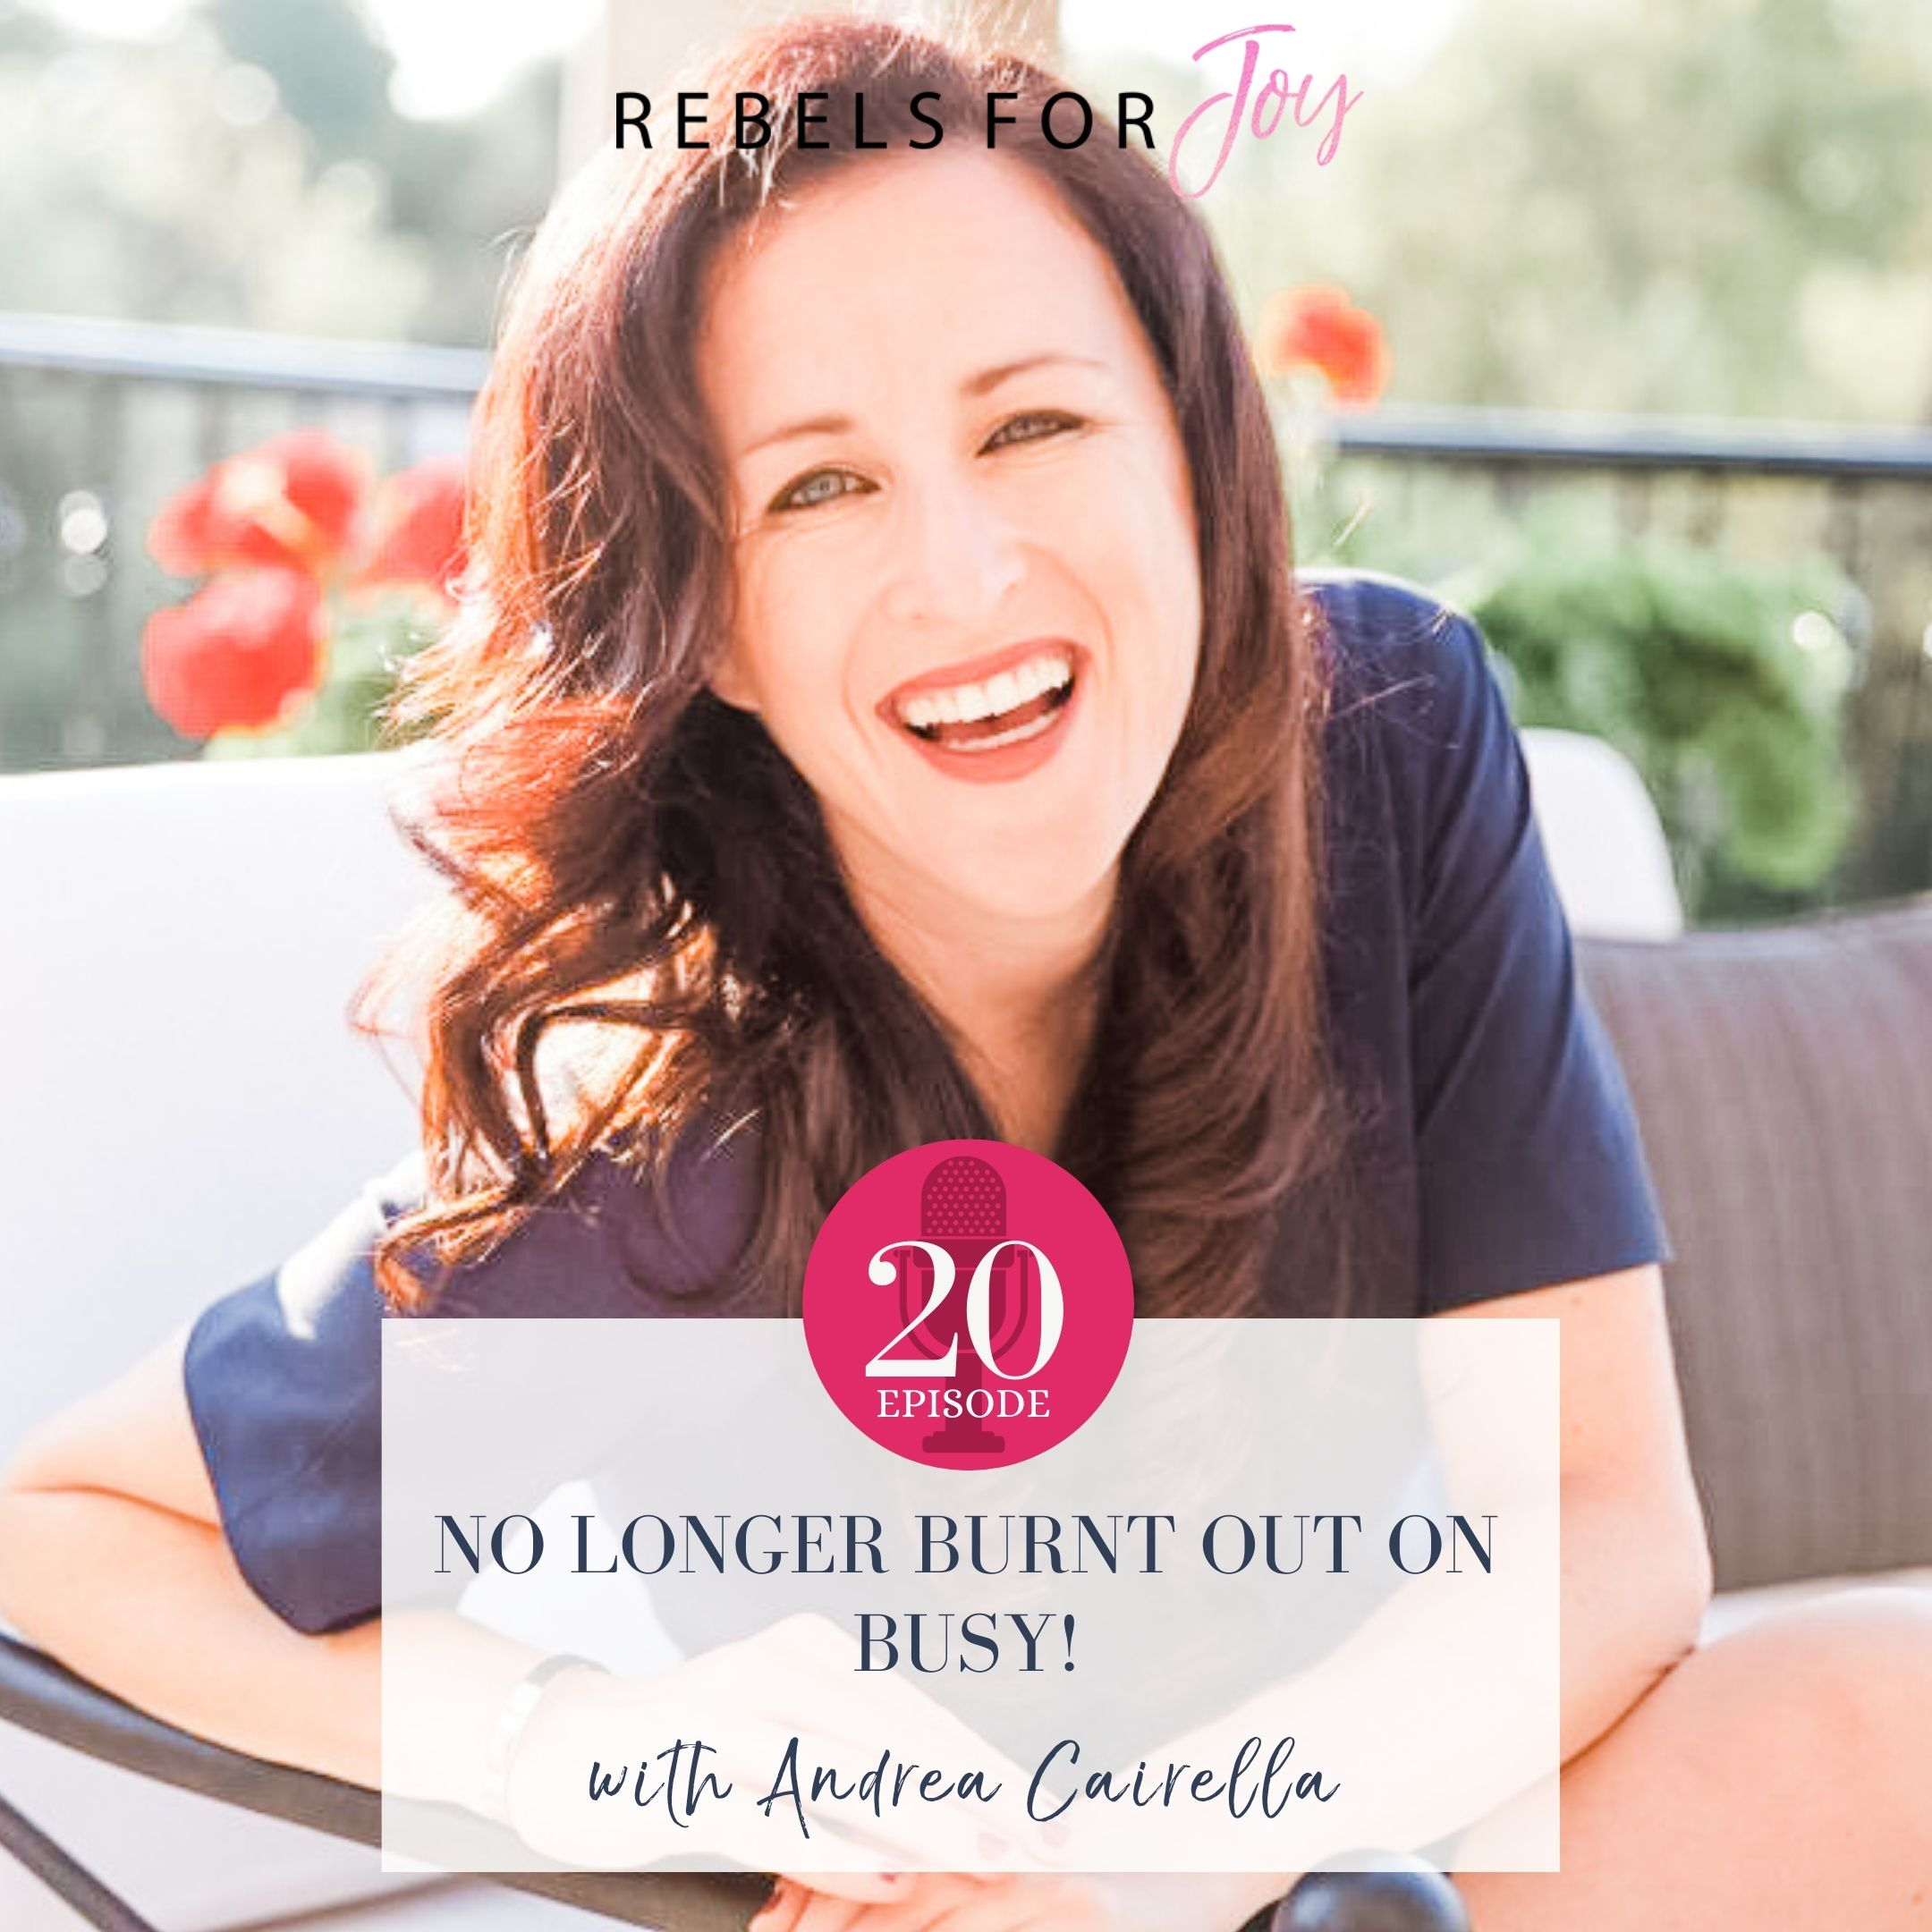 Episode 20: No longer burnt out on busy!